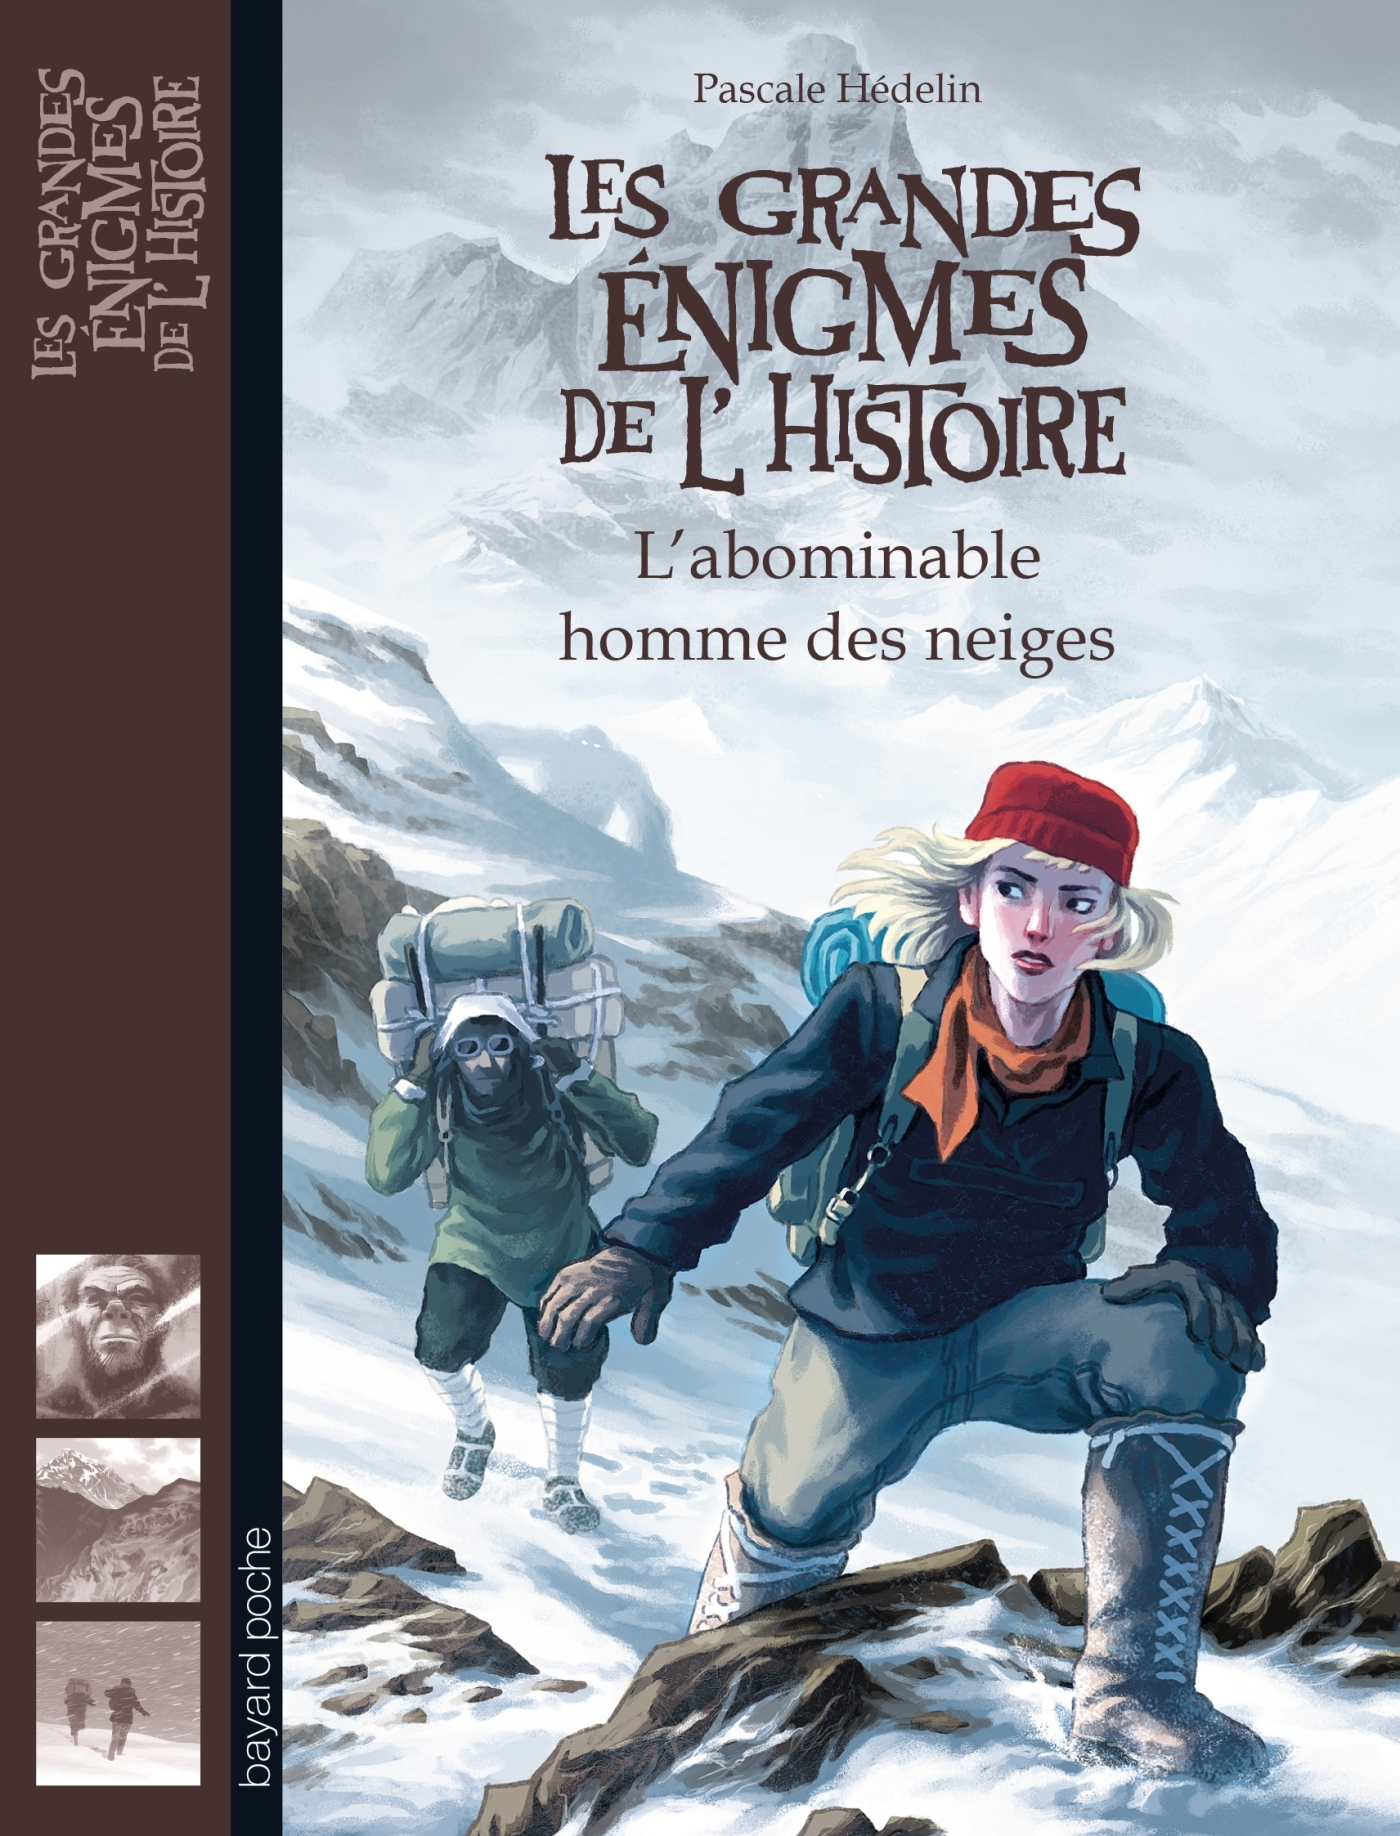 ABOMINABLE HOMME DES NEIGES